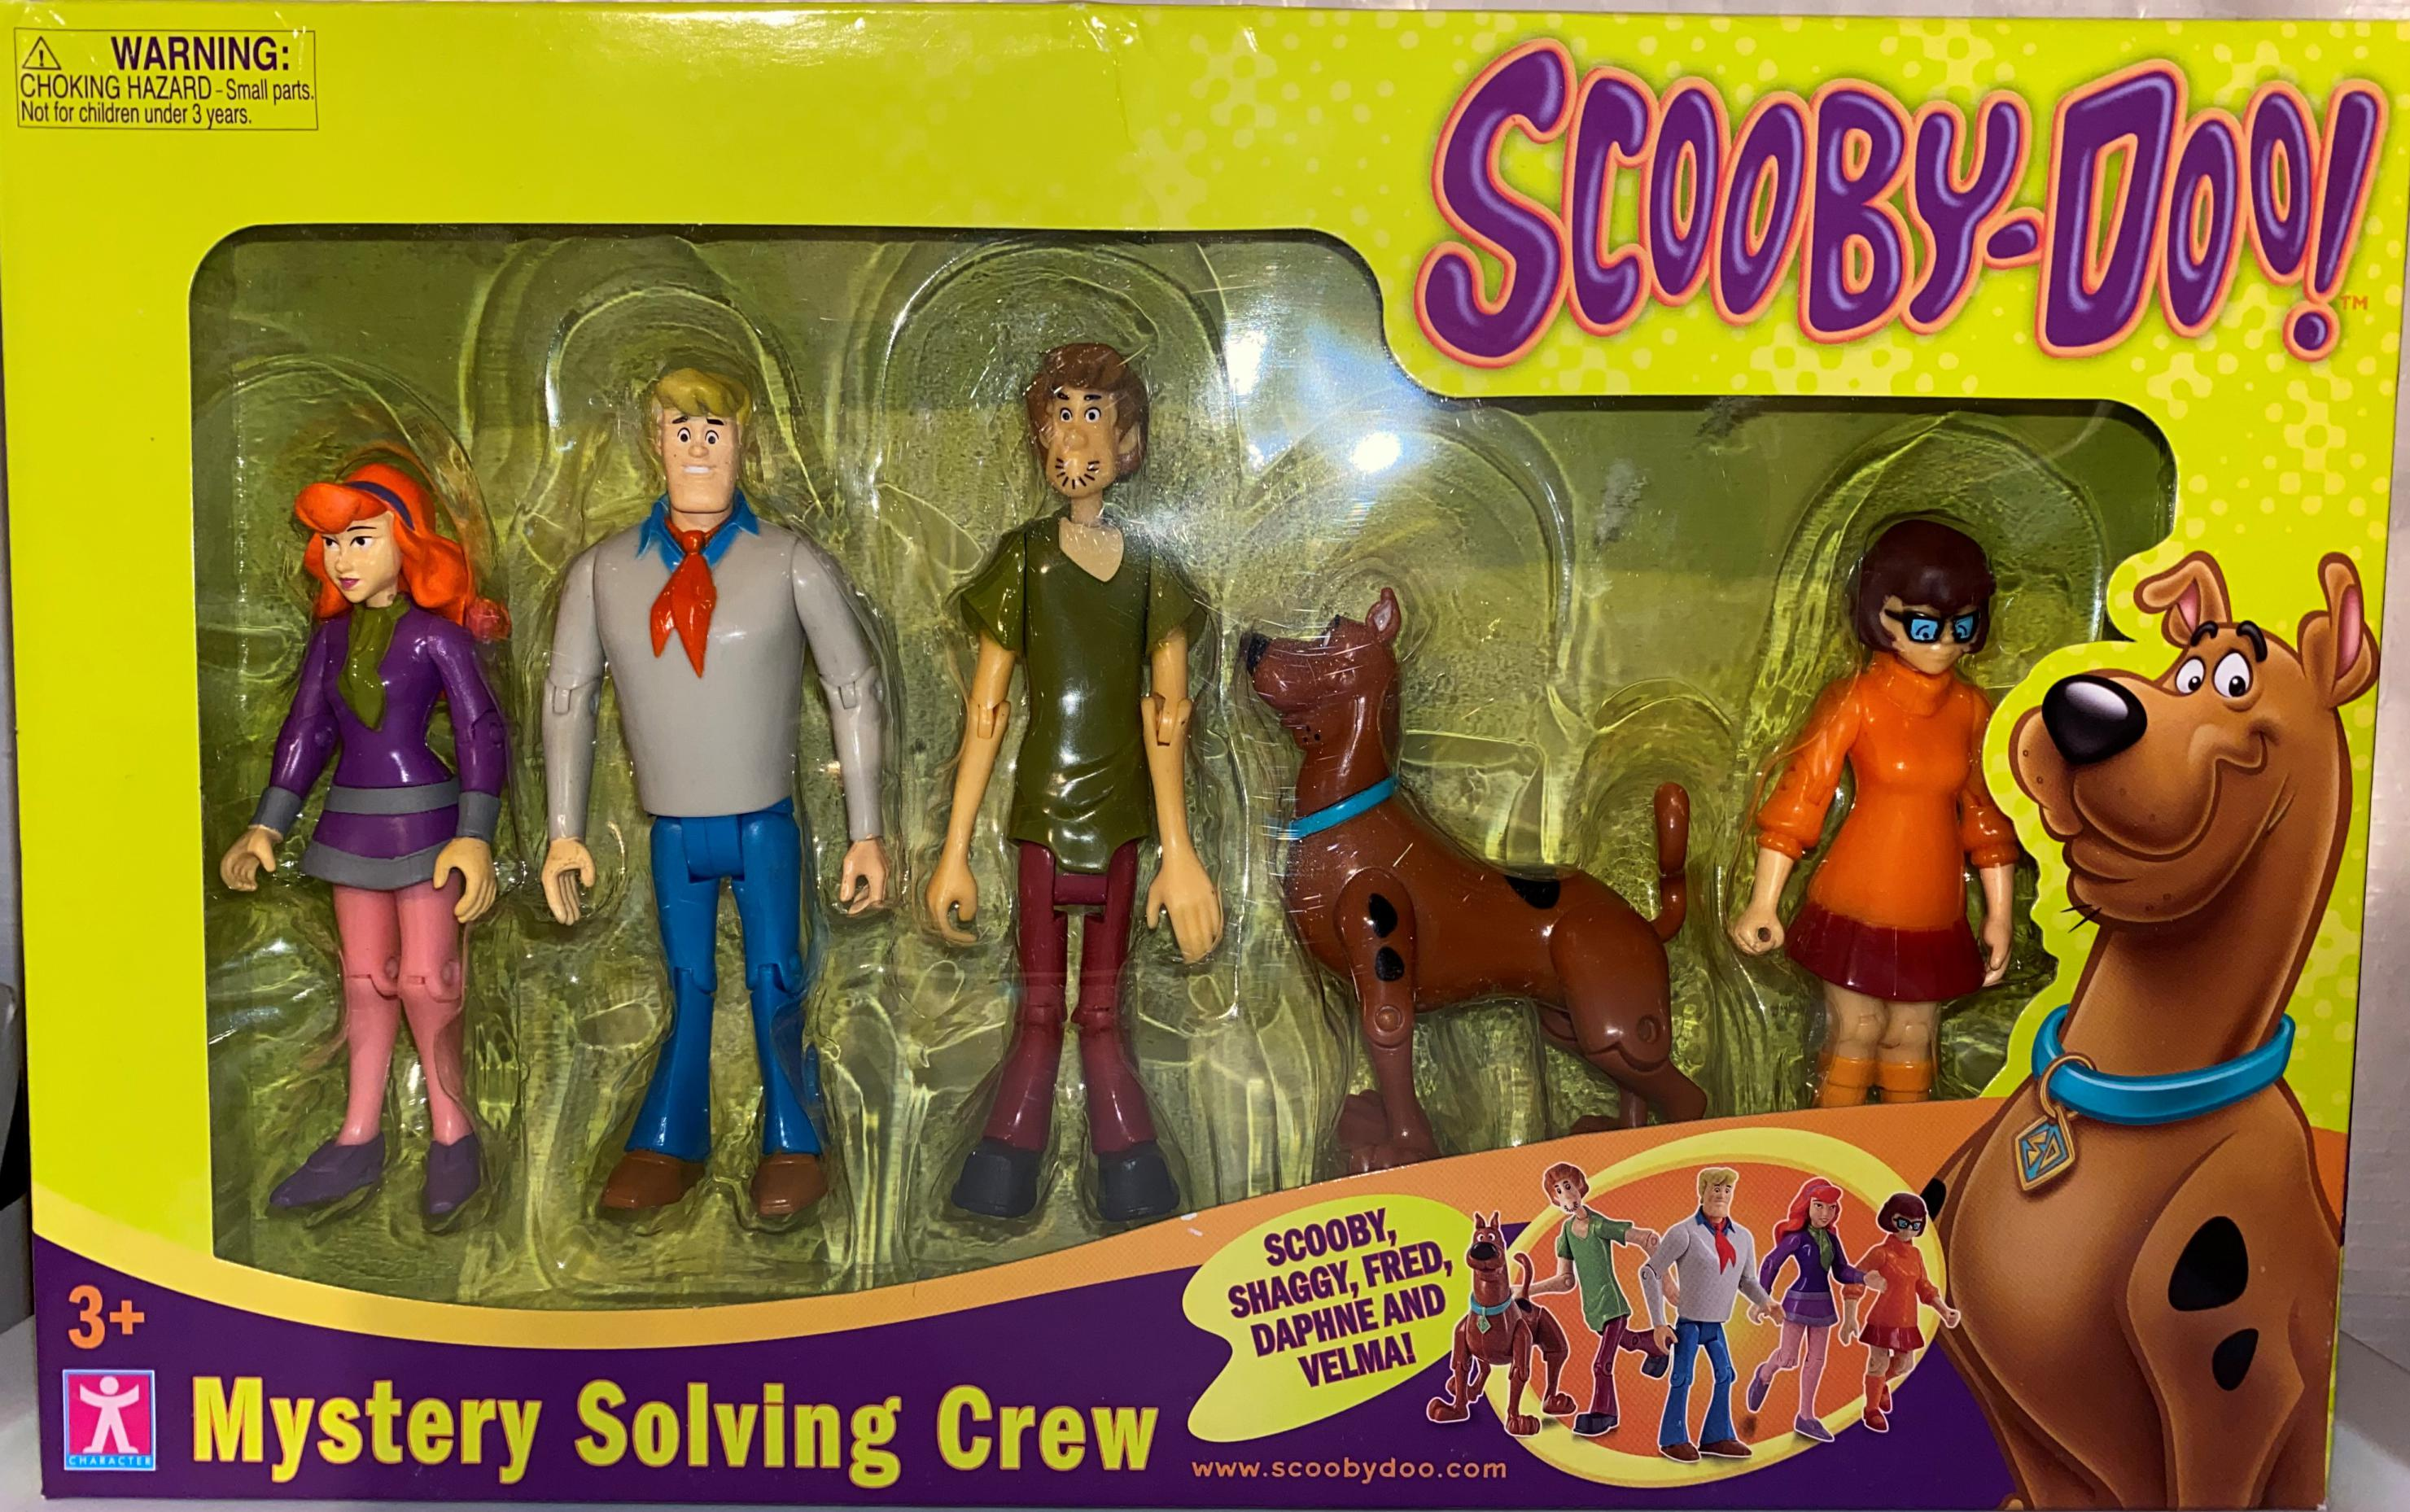 Mystery Solving Crew 5-Pack (2019)